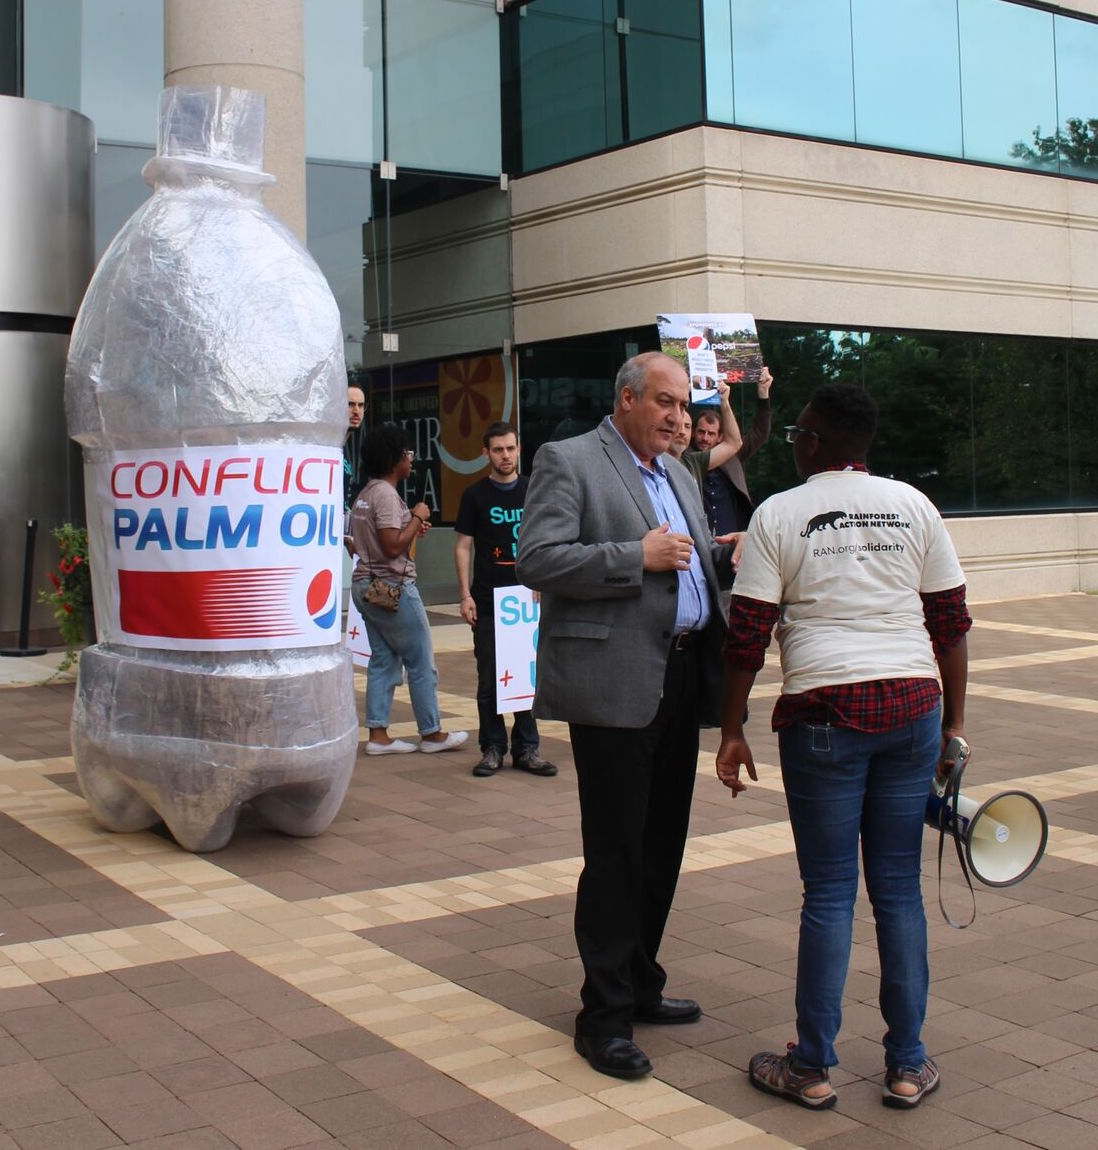 Pepsi accepting the #ConflictPalmOil bottle